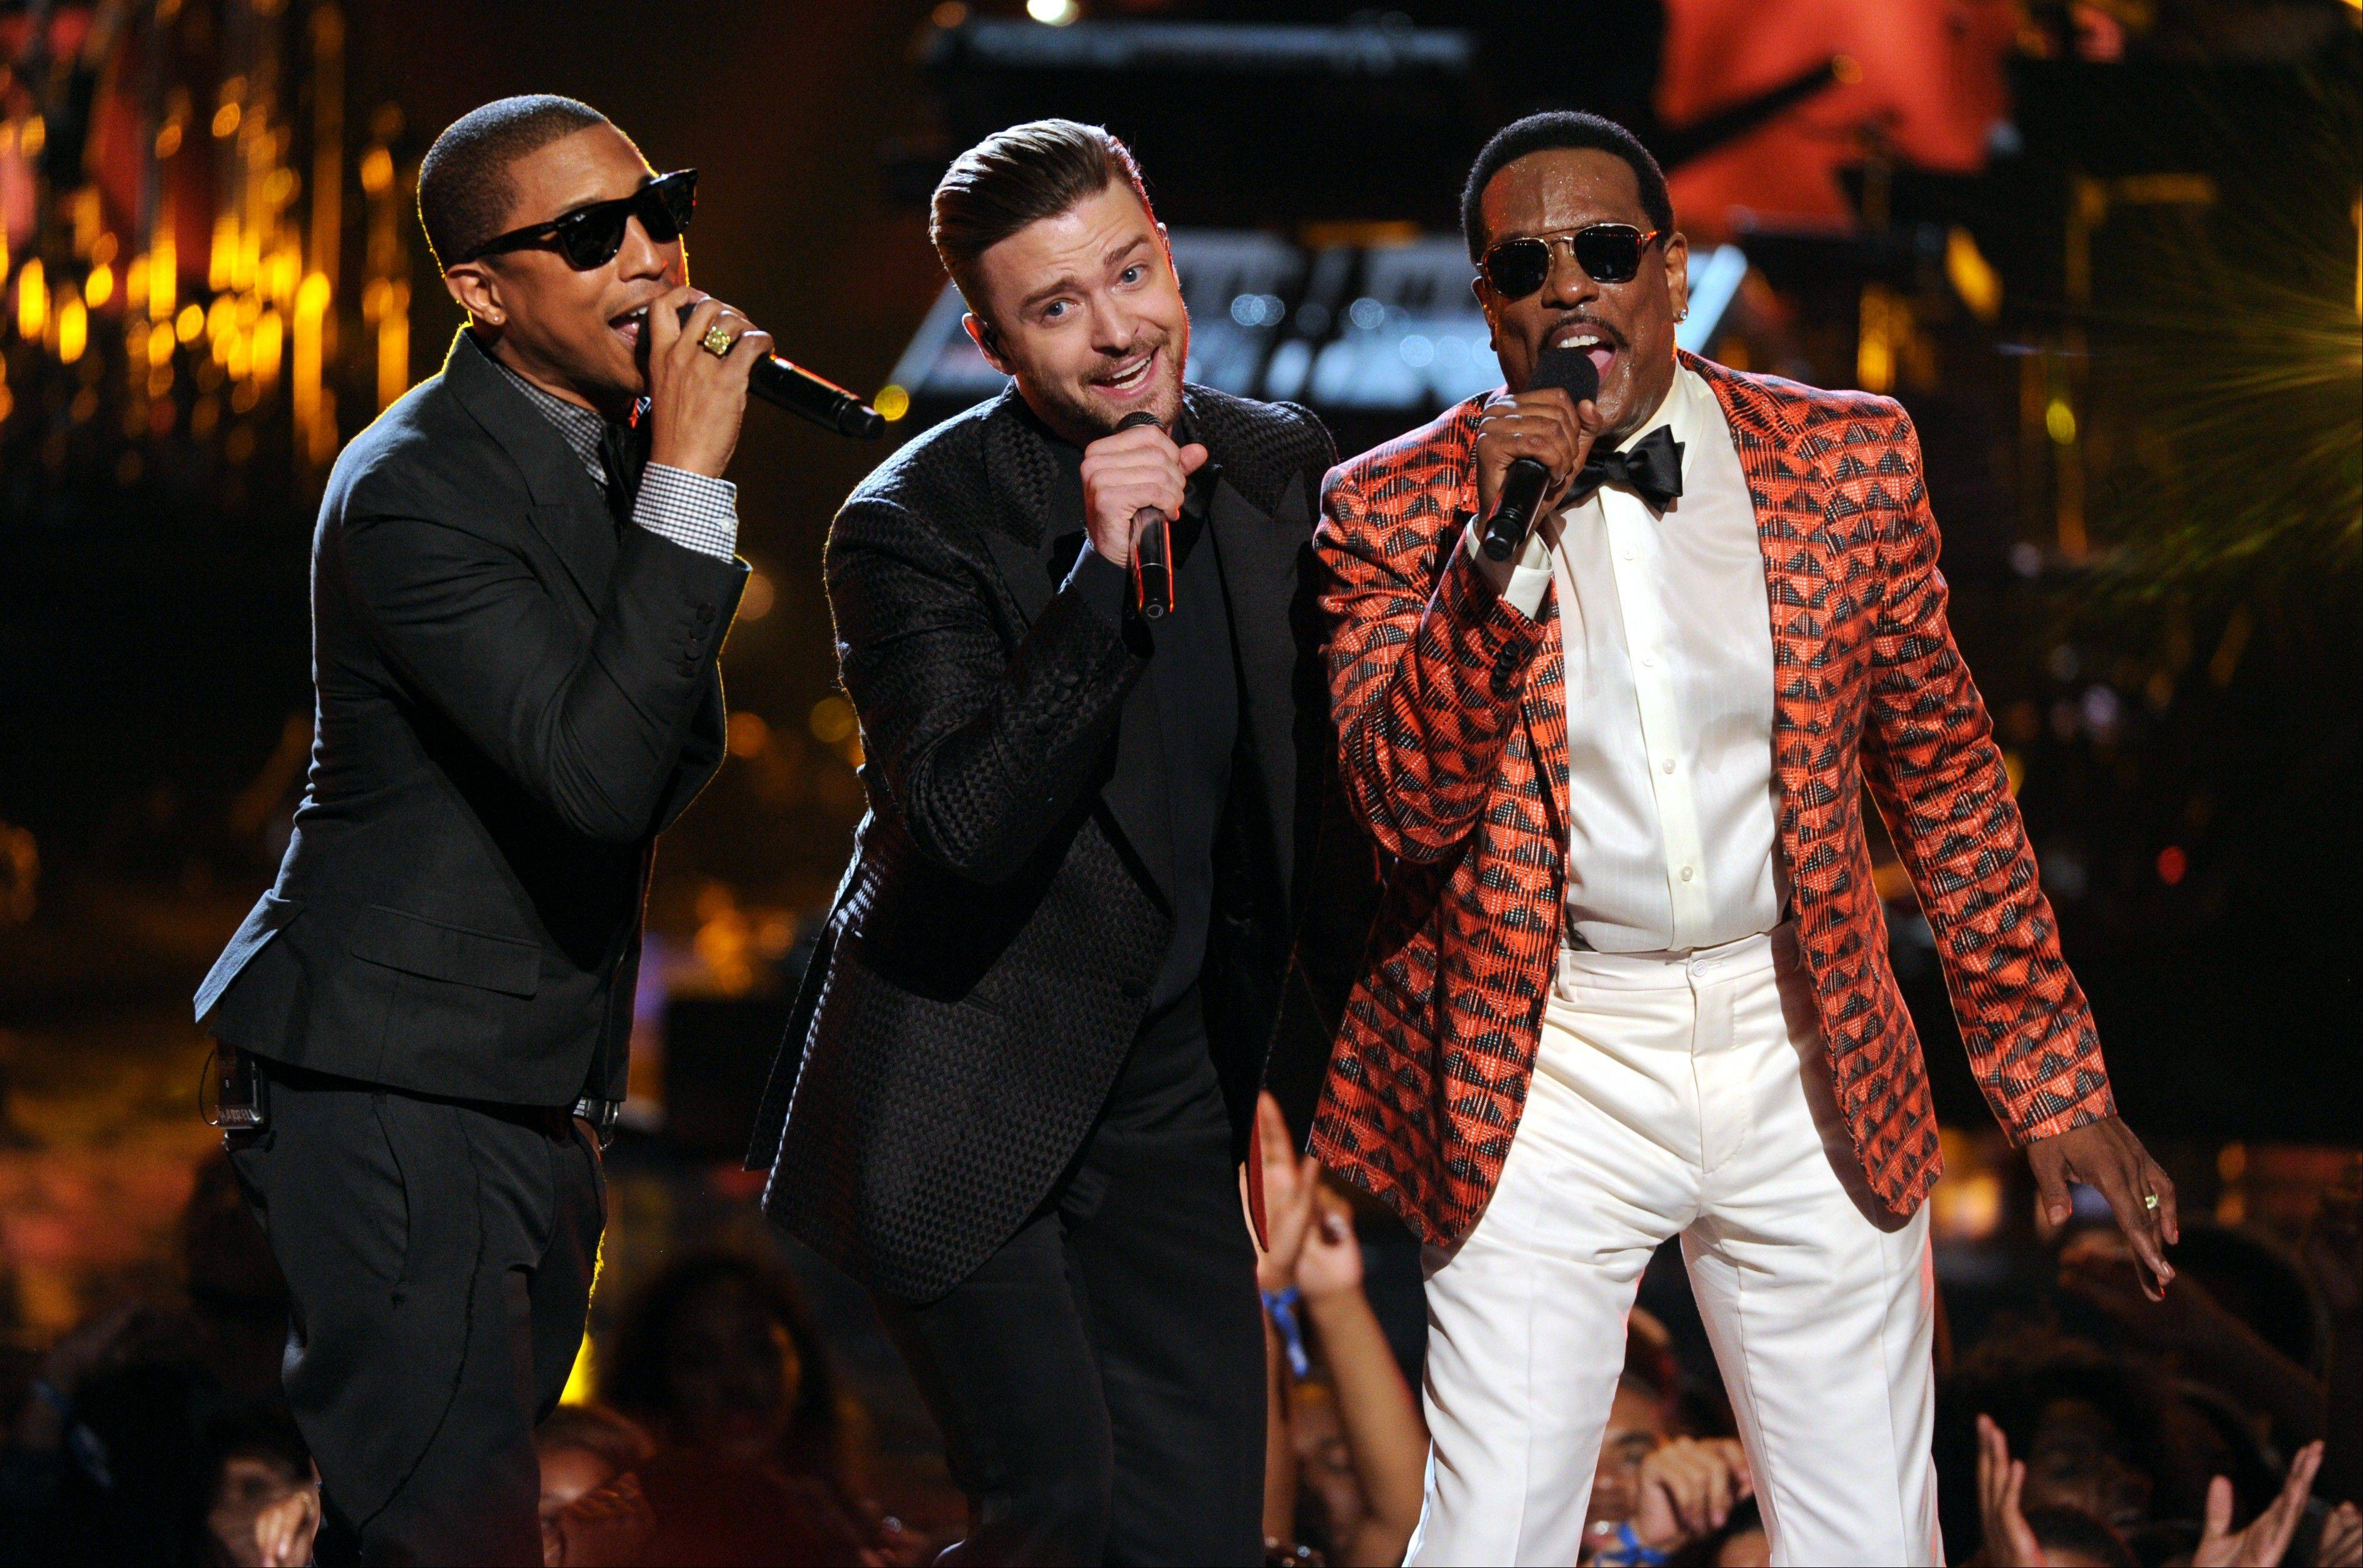 Pharrell Williams, left, Justin Timberlake and Charlie Wilson perform onstage at the BET Awards at the Nokia Theatre on Sunday. The show was more about the performances than the awards this year.